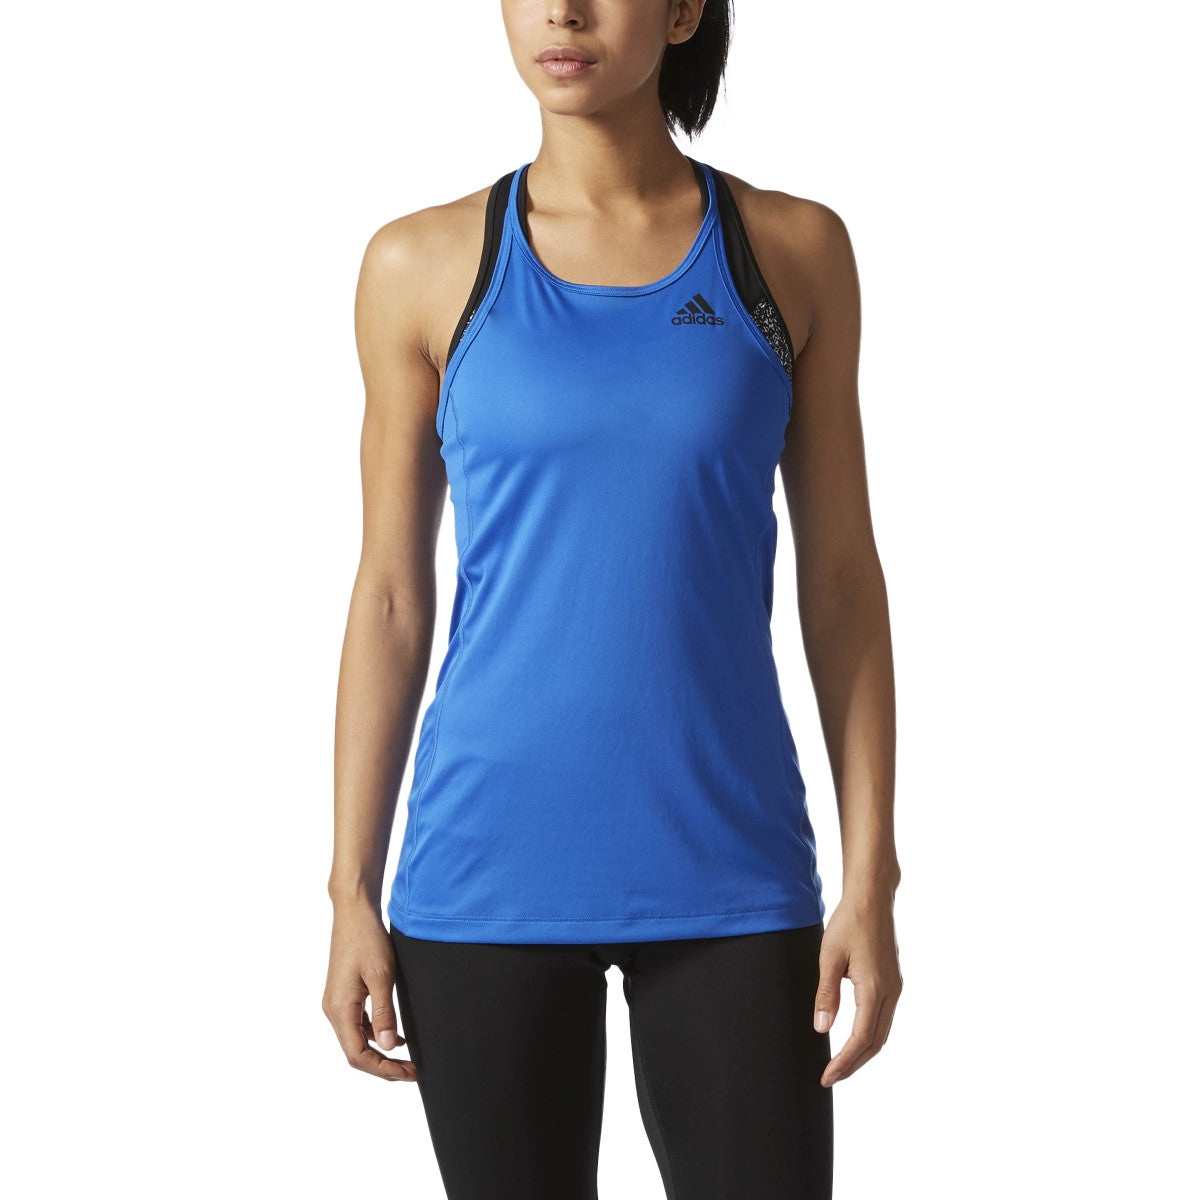 Adidas Originals BVD Sports Performance Step Up Women's Training Tank Top Blue